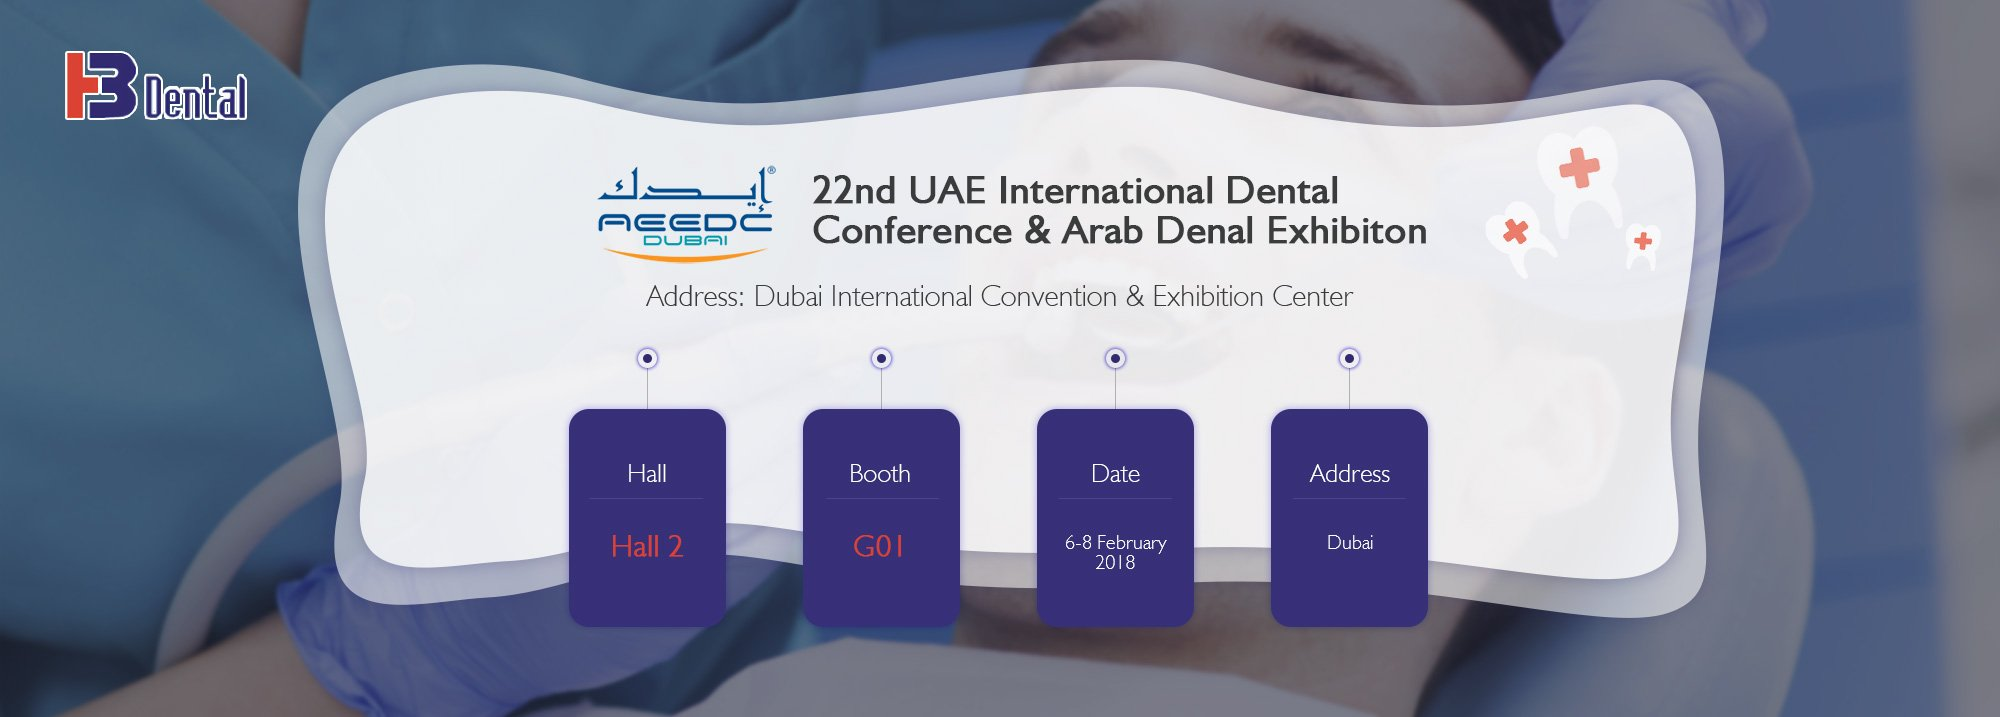 Dubai Dental Exhibition